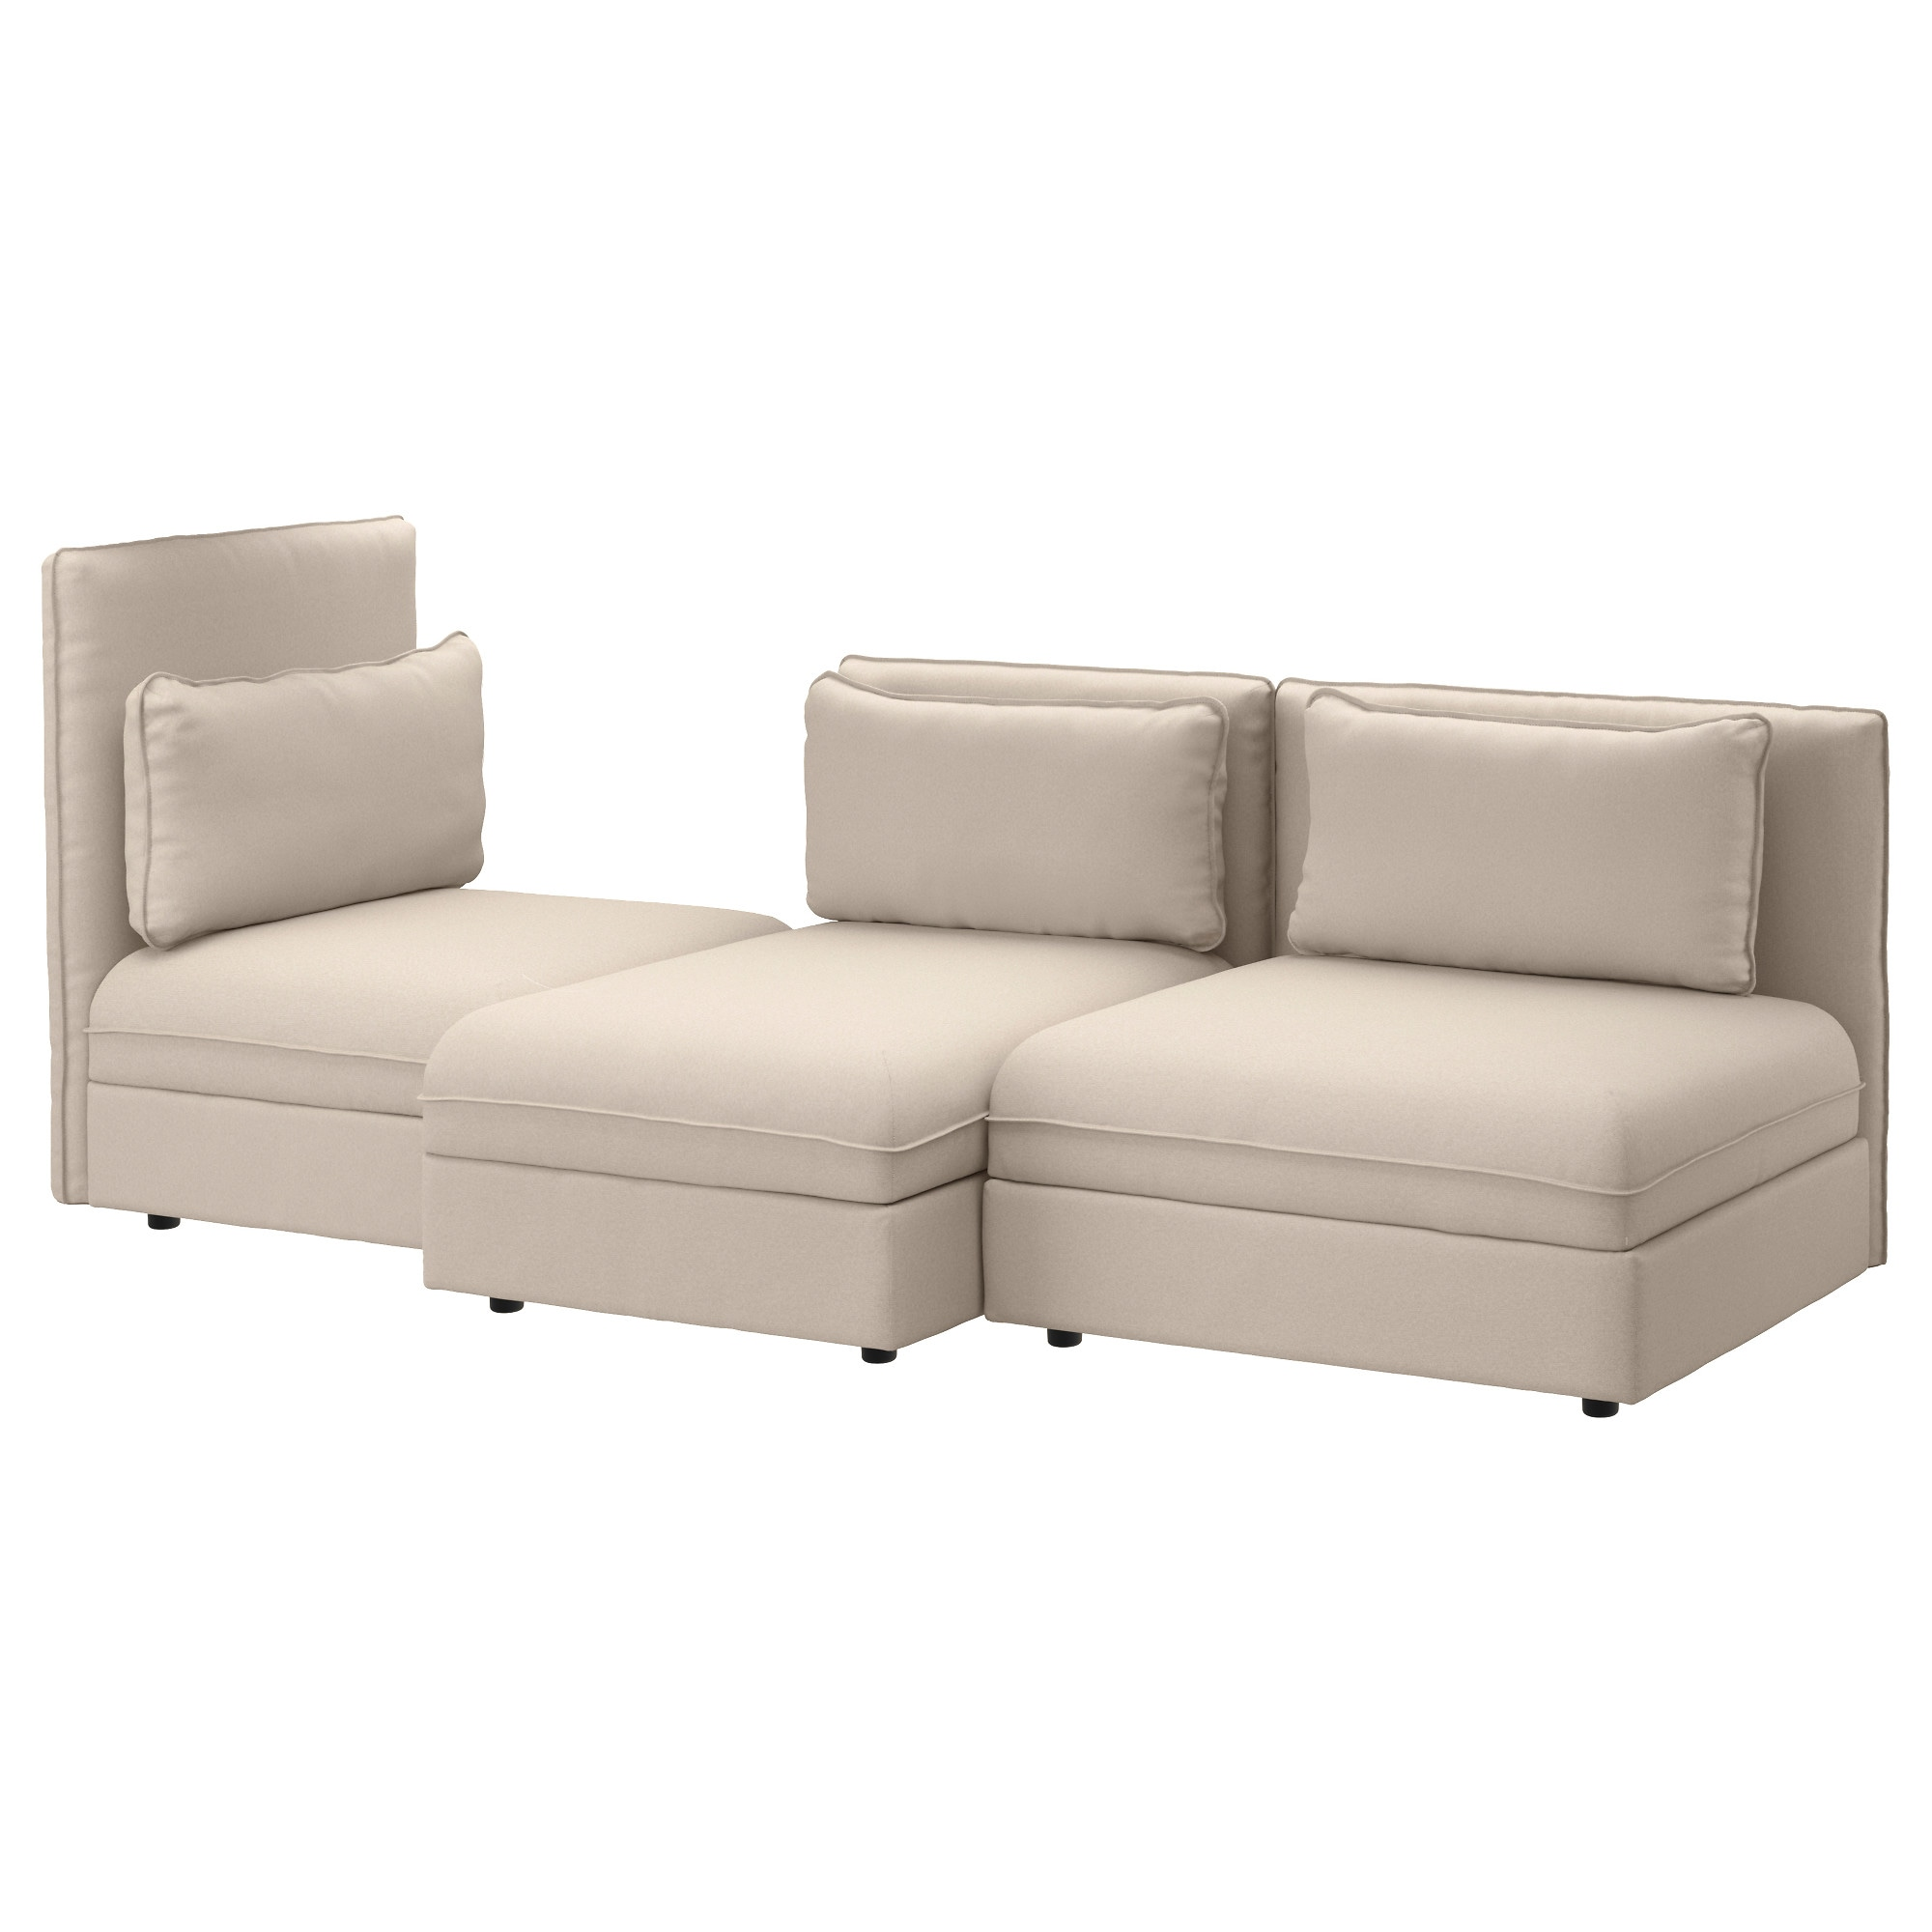 Ledersofa modern beige  Leather & Faux Leather Couches, Chairs & Ottomans - IKEA